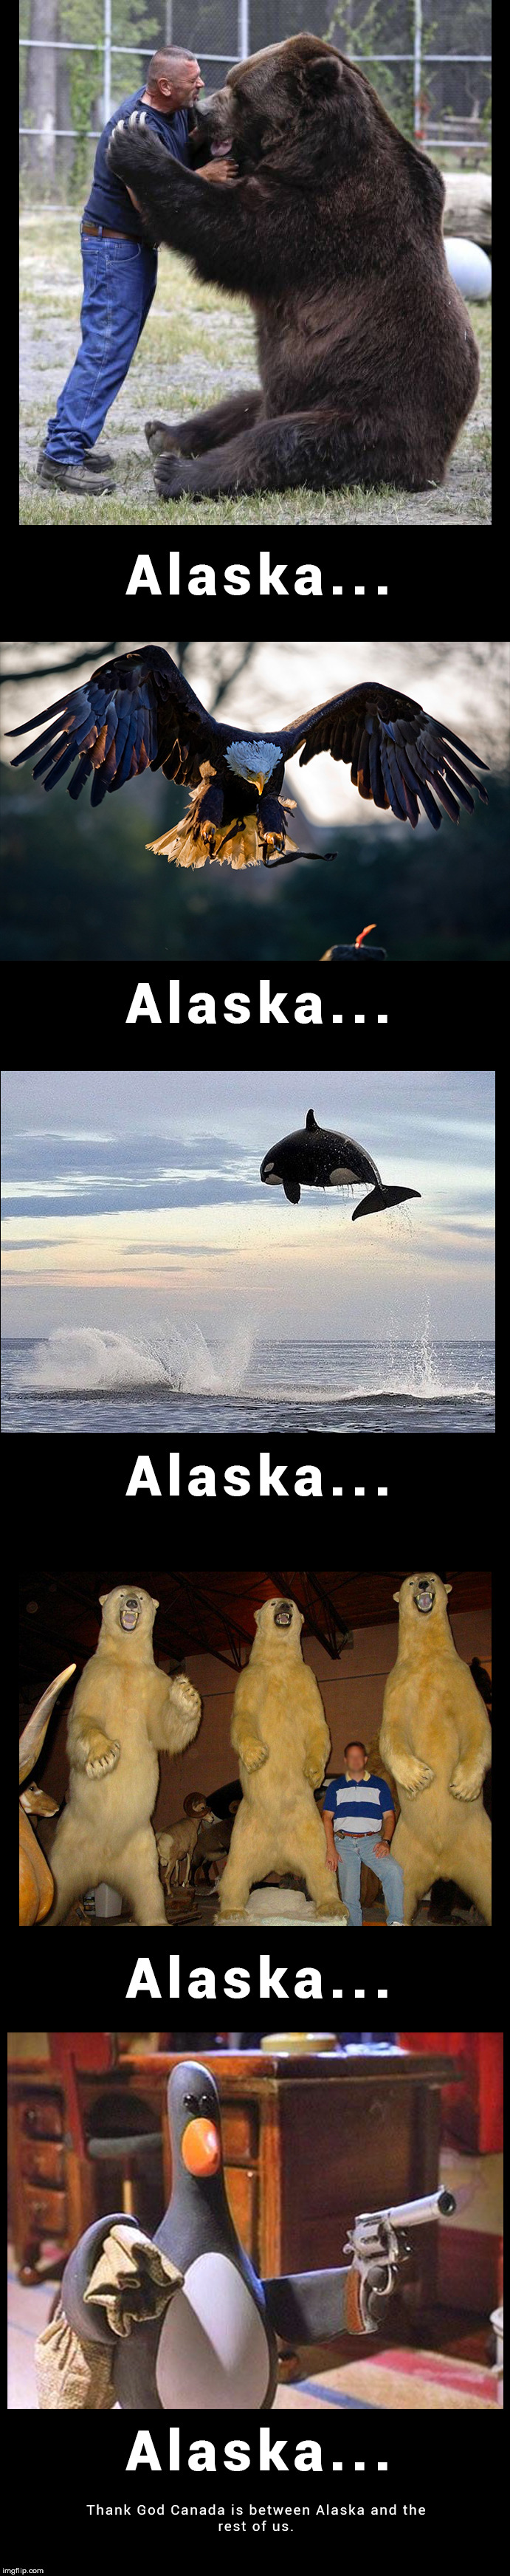 image tagged in alaska,grizzly bear,eagle,penguin | made w/ Imgflip meme maker